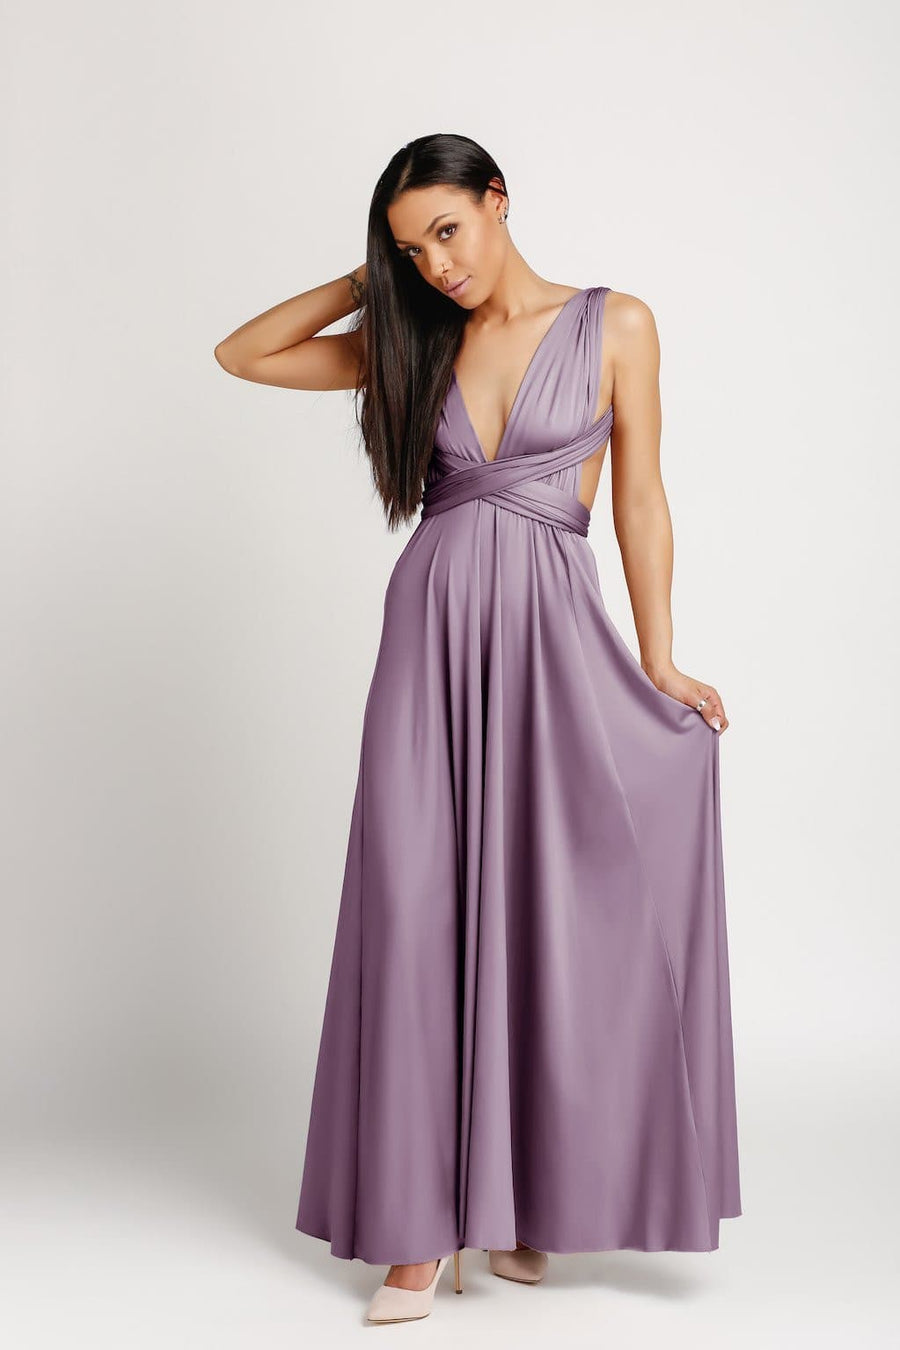 Bridesmaid Dresses Canada - Infinity Floor Length Bridesmaid Dress - BridesMade Online